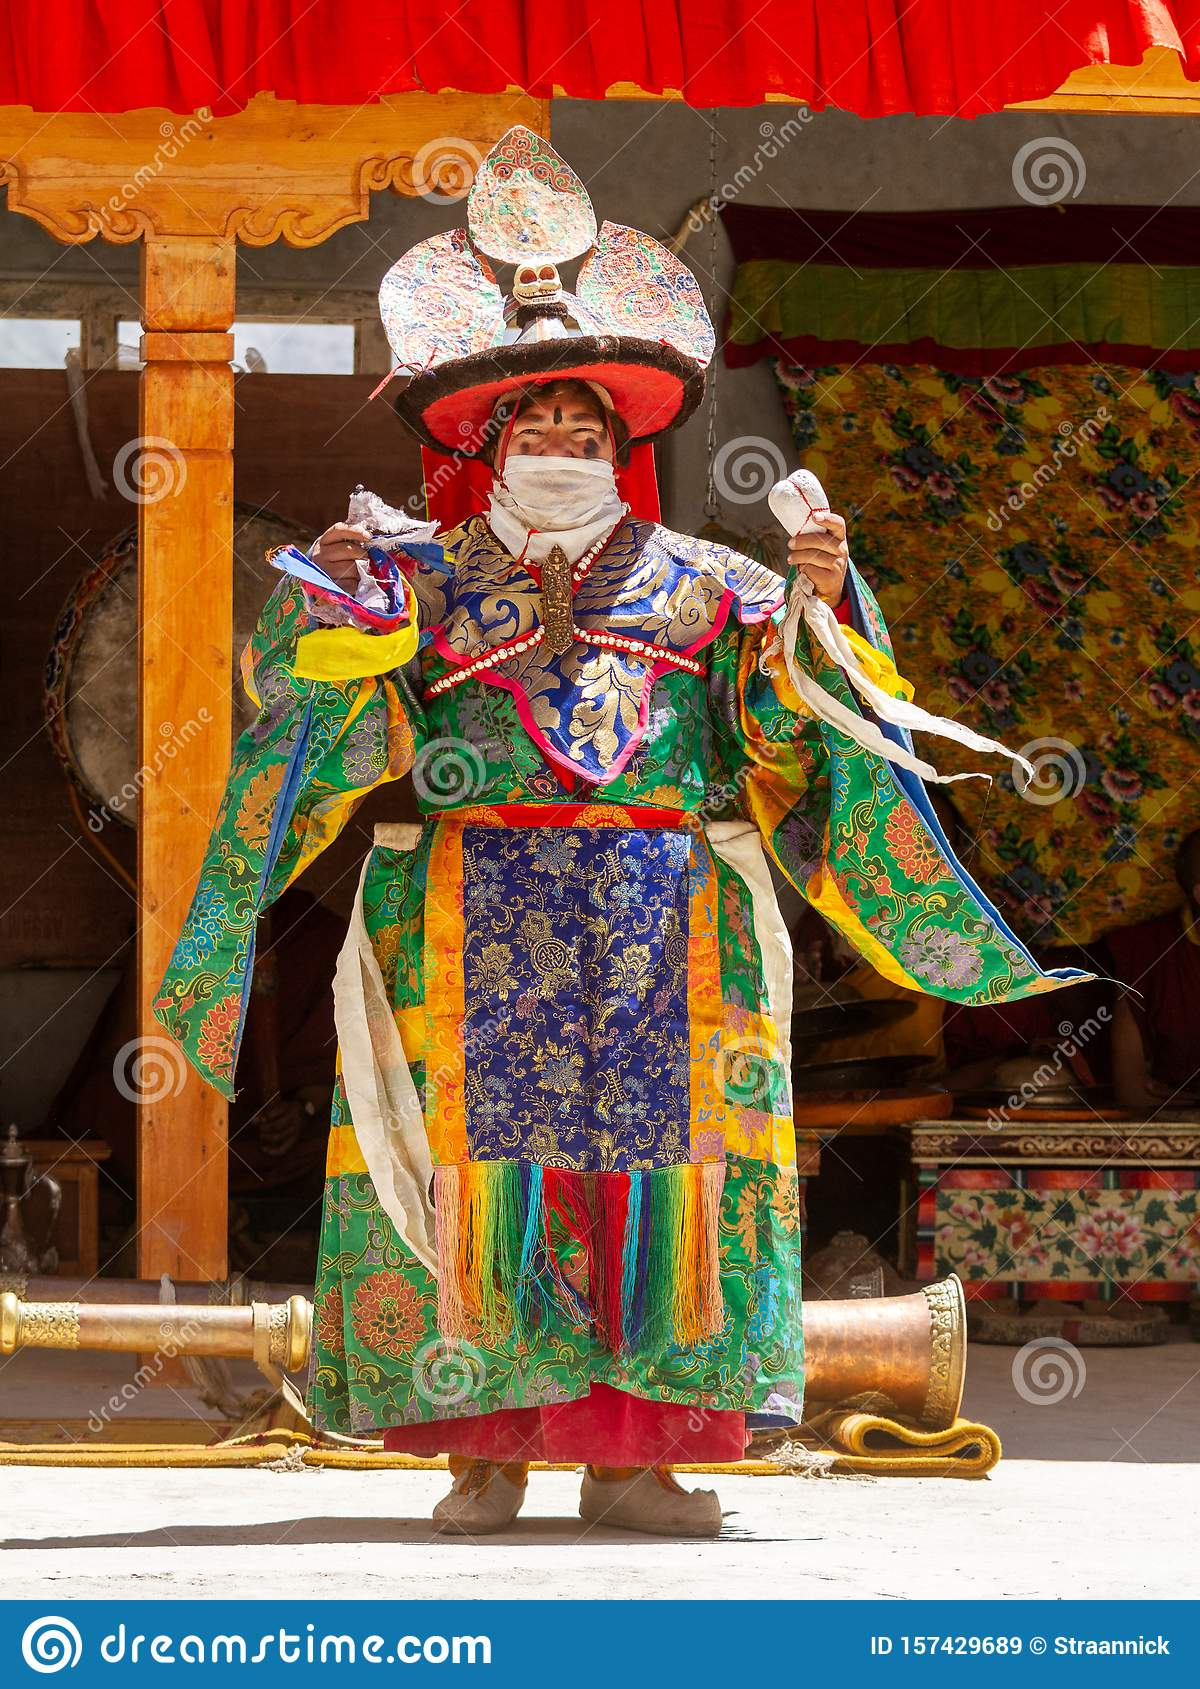 Lama in ritual costume and ornate hat performs a historical mystery Black Hat Dance of Tibetan Buddhism on the Cham Dance Festival